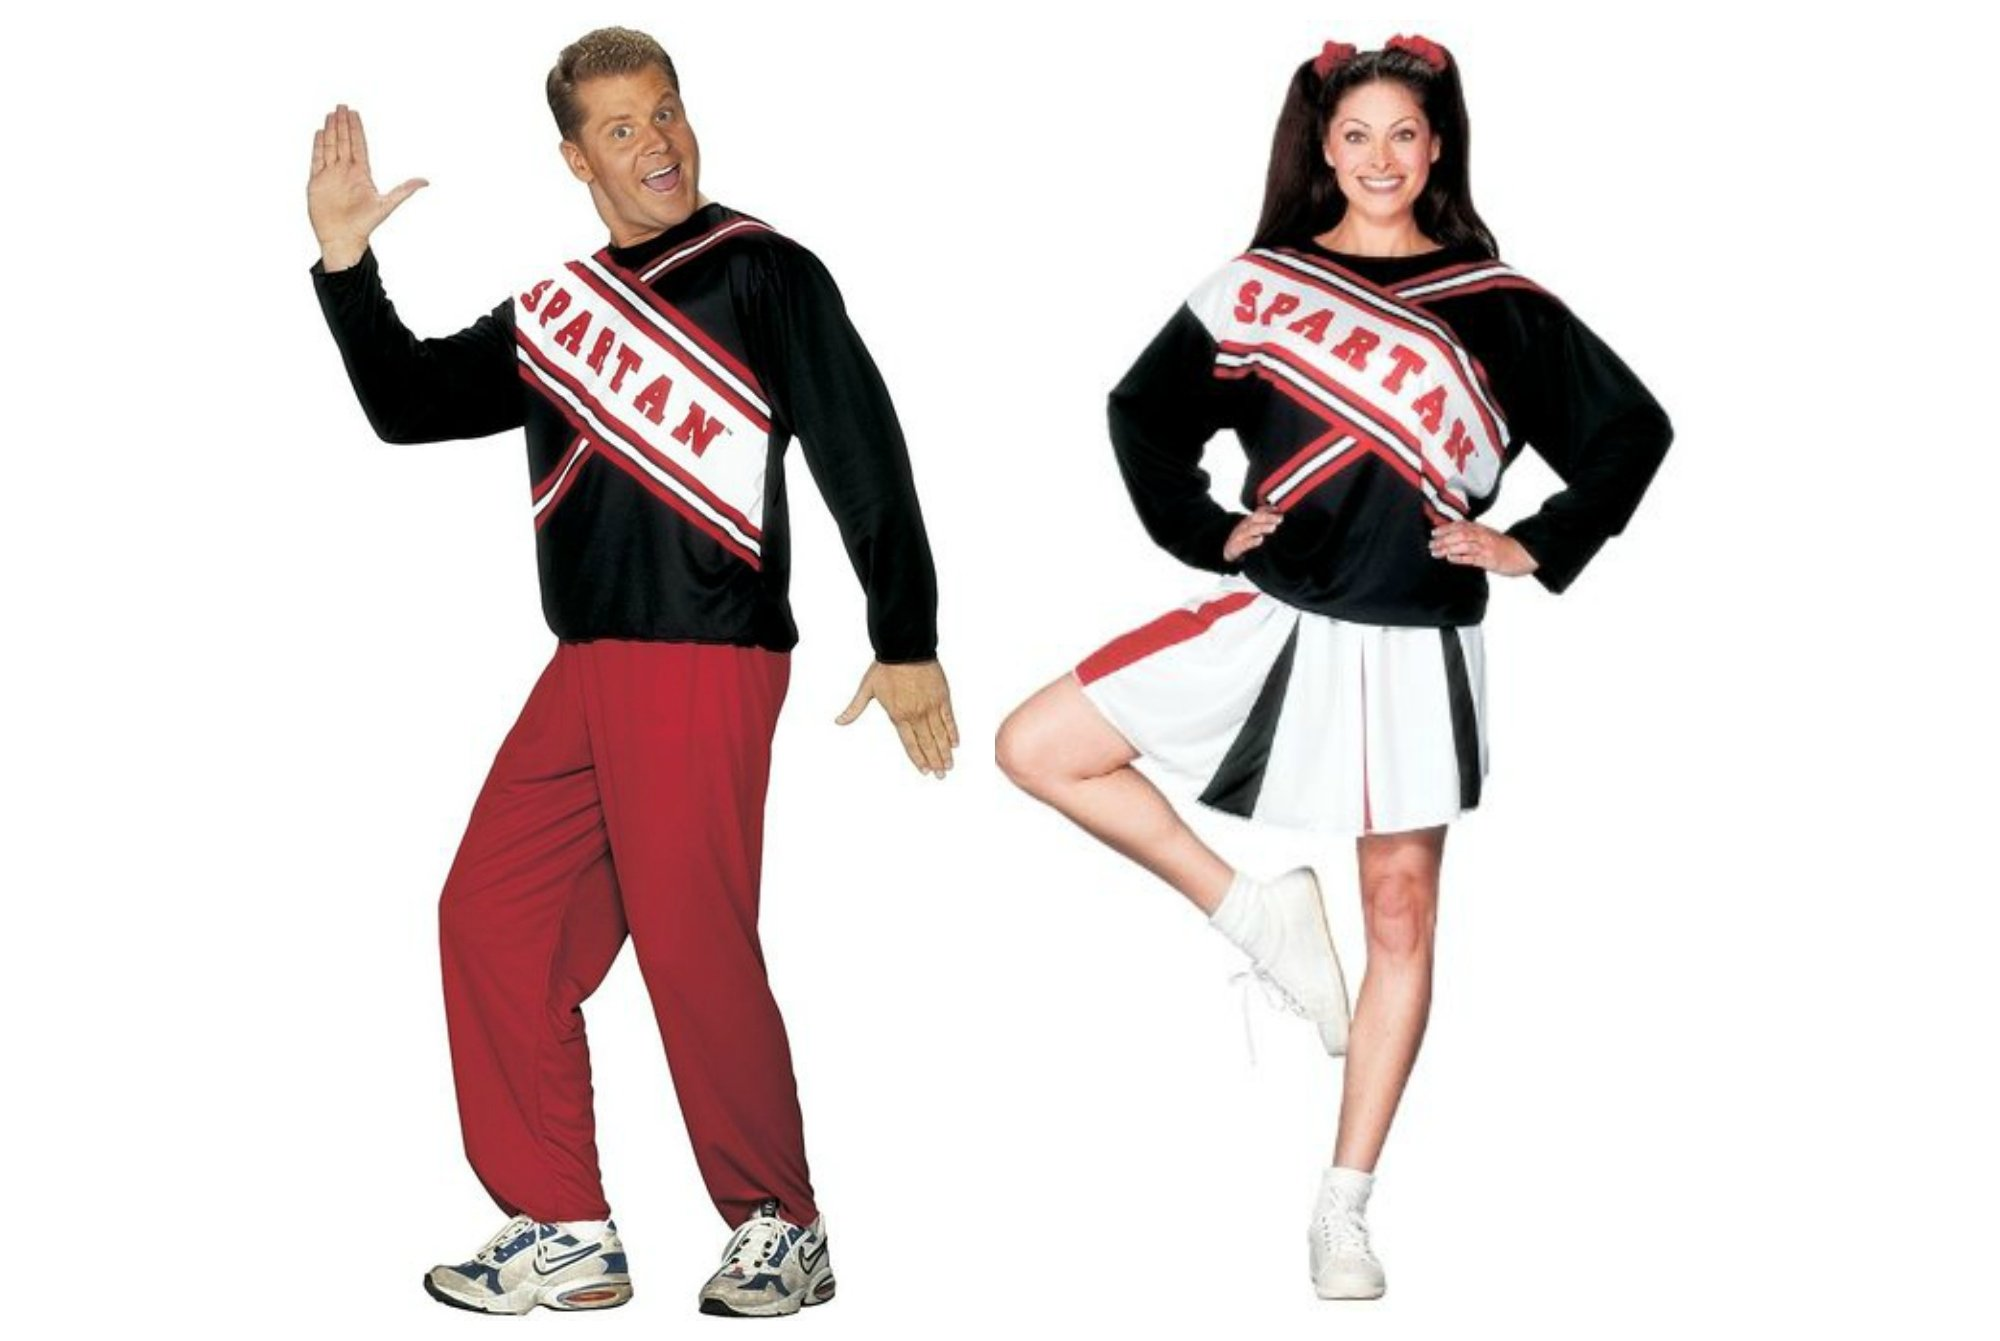 10 Trendy Saturday Night Live Costume Ideas 16 easy couples costumes to obsess over this halloween aol lifestyle 2020